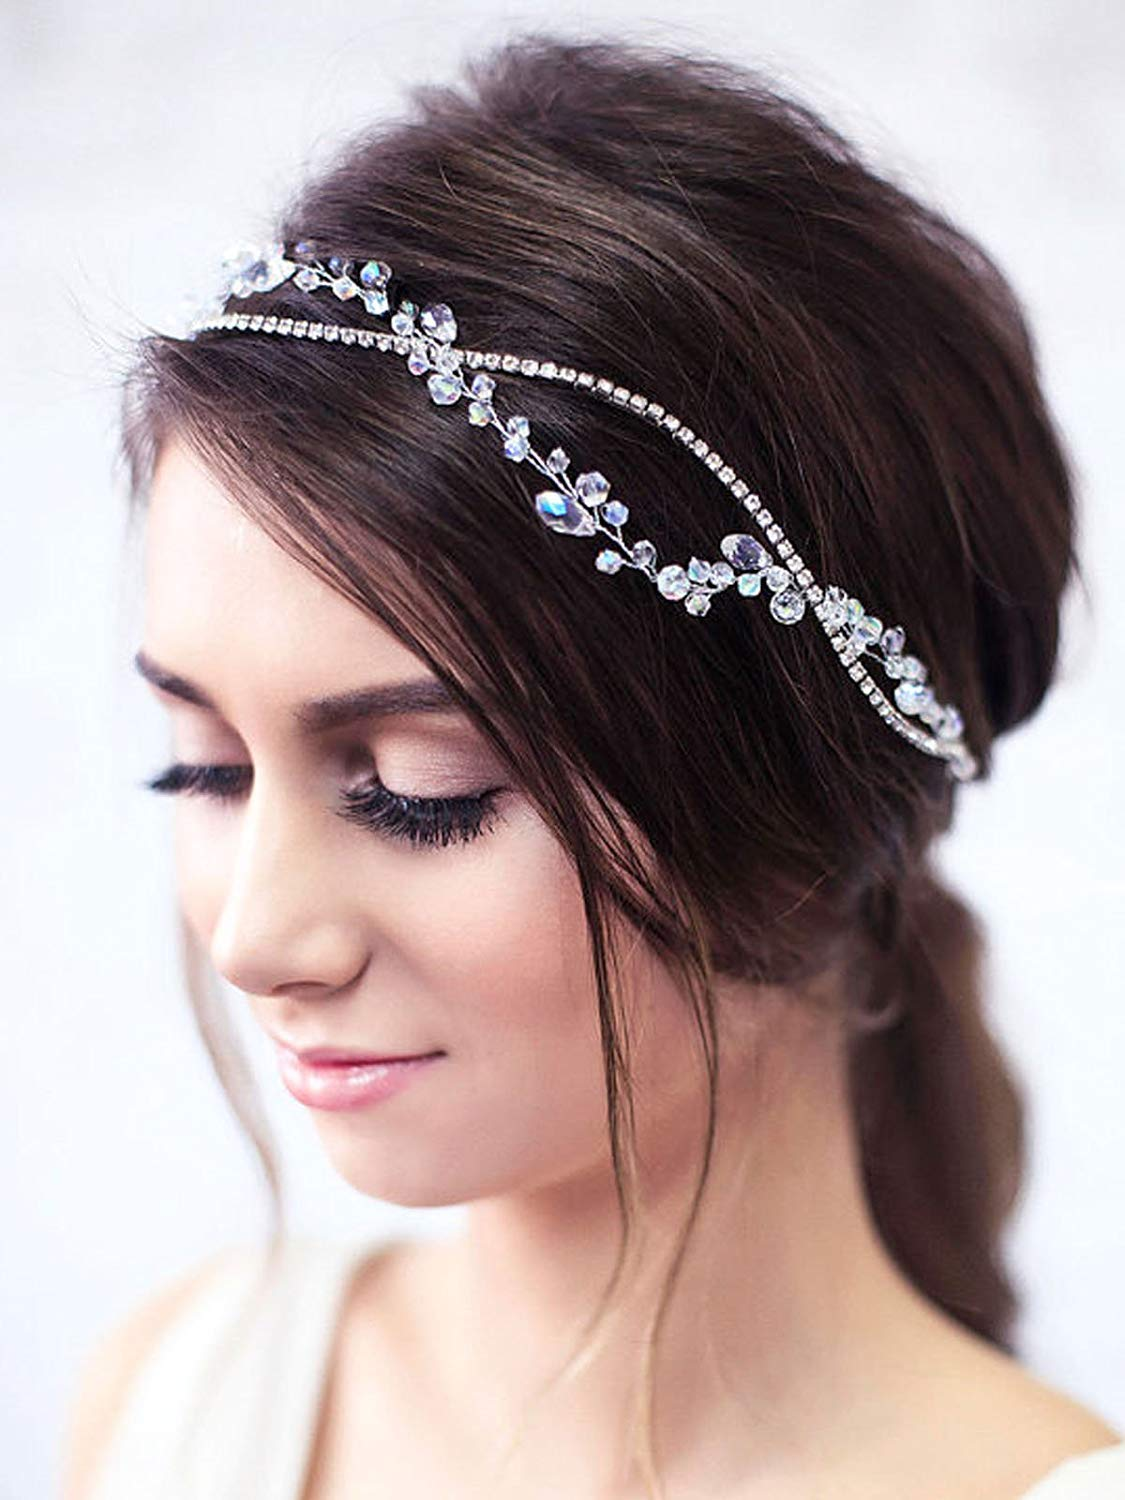 Simsly Wedding Hair Vines Rhinestone Headbands Bridal Hair Accessories CRYSTAL Dancing Prom for Brides and Bridesmaids (Silver) FS-148